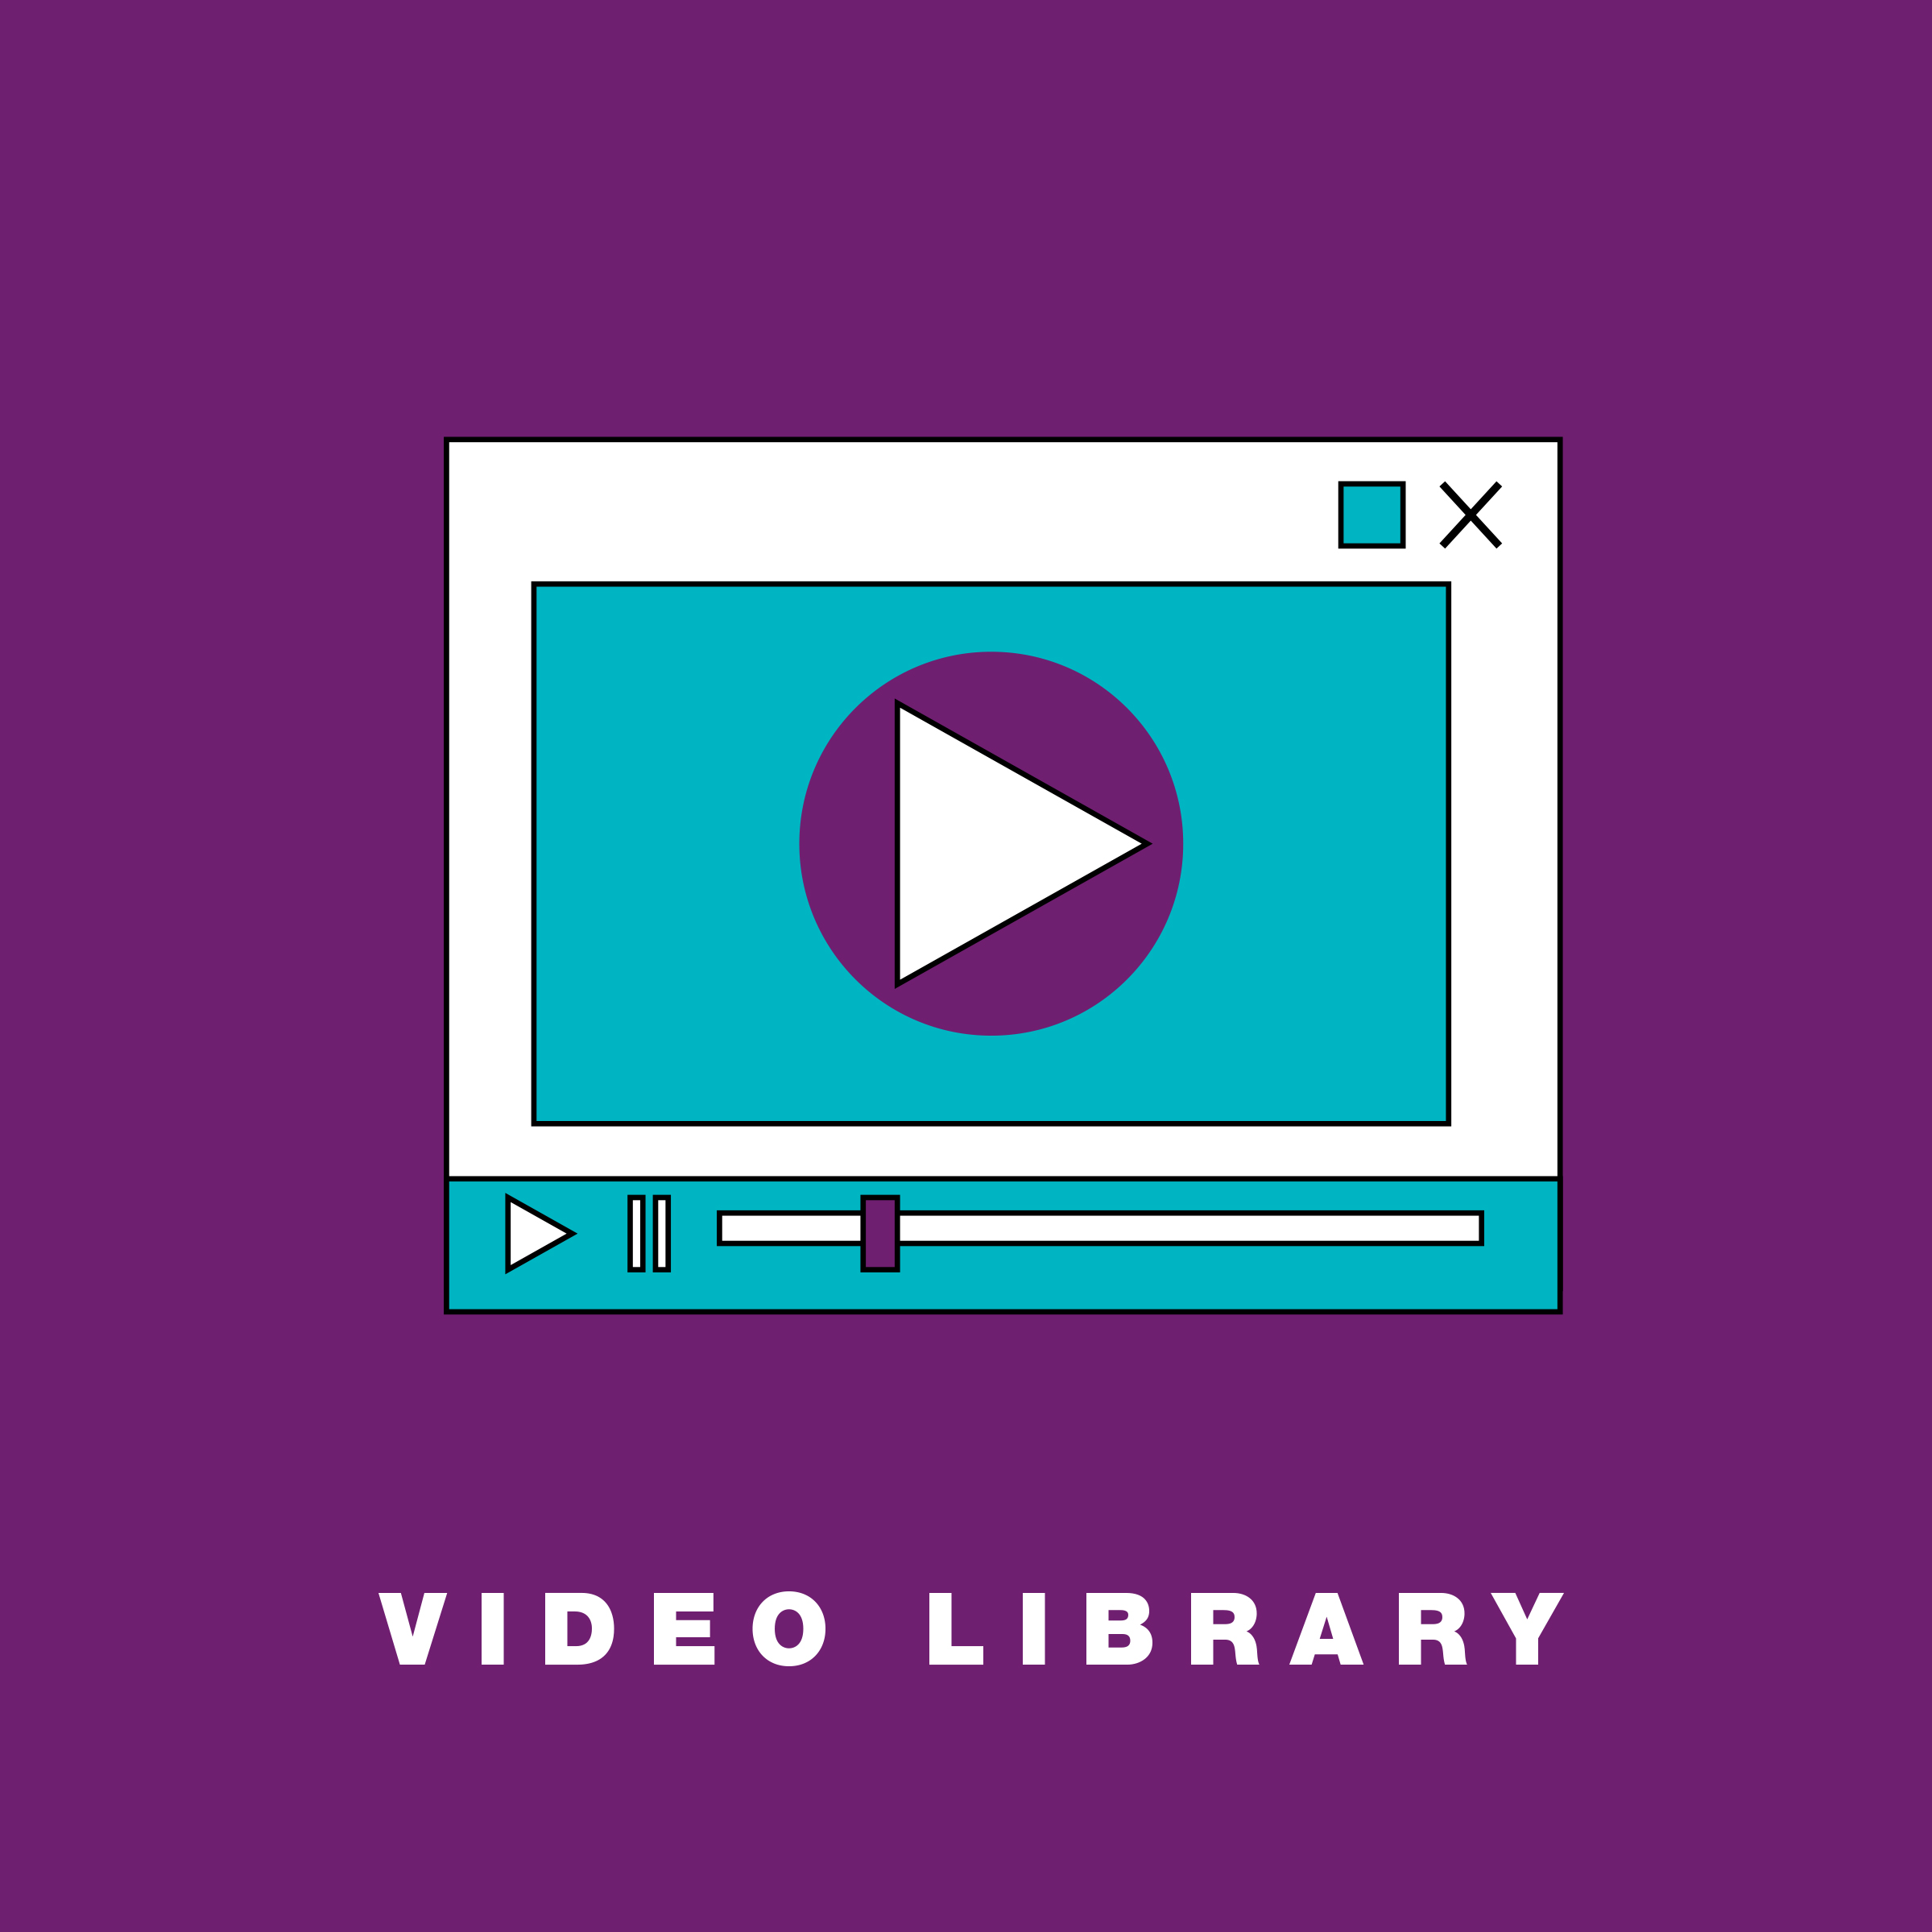 A growing video library featuring demos and tutorials. -